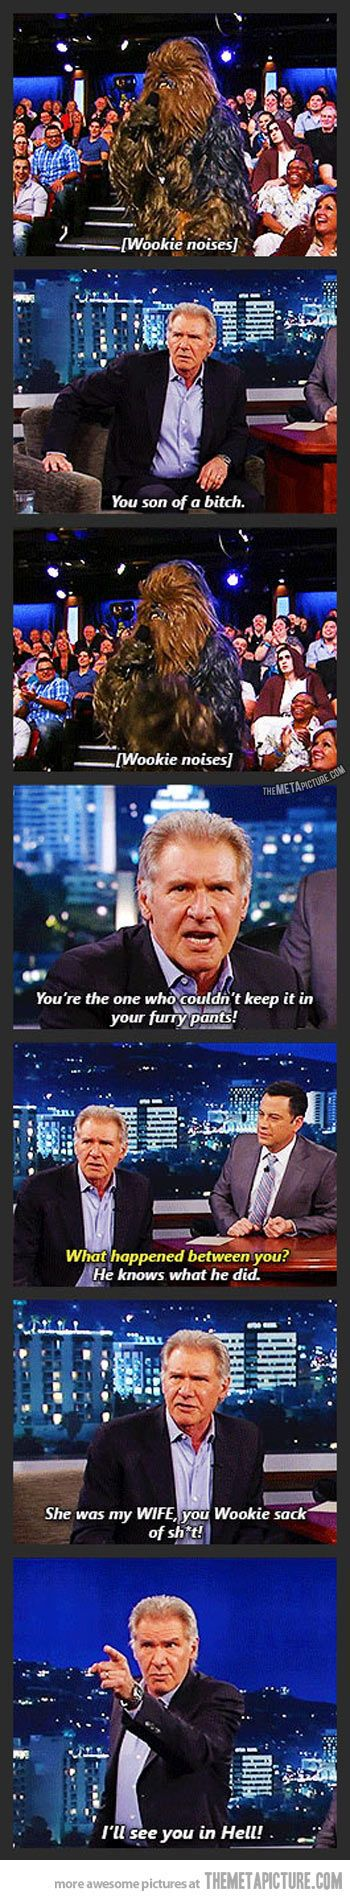 Harrison Ford's reunion with Chewbacca during an interview. Literal lol here!!!